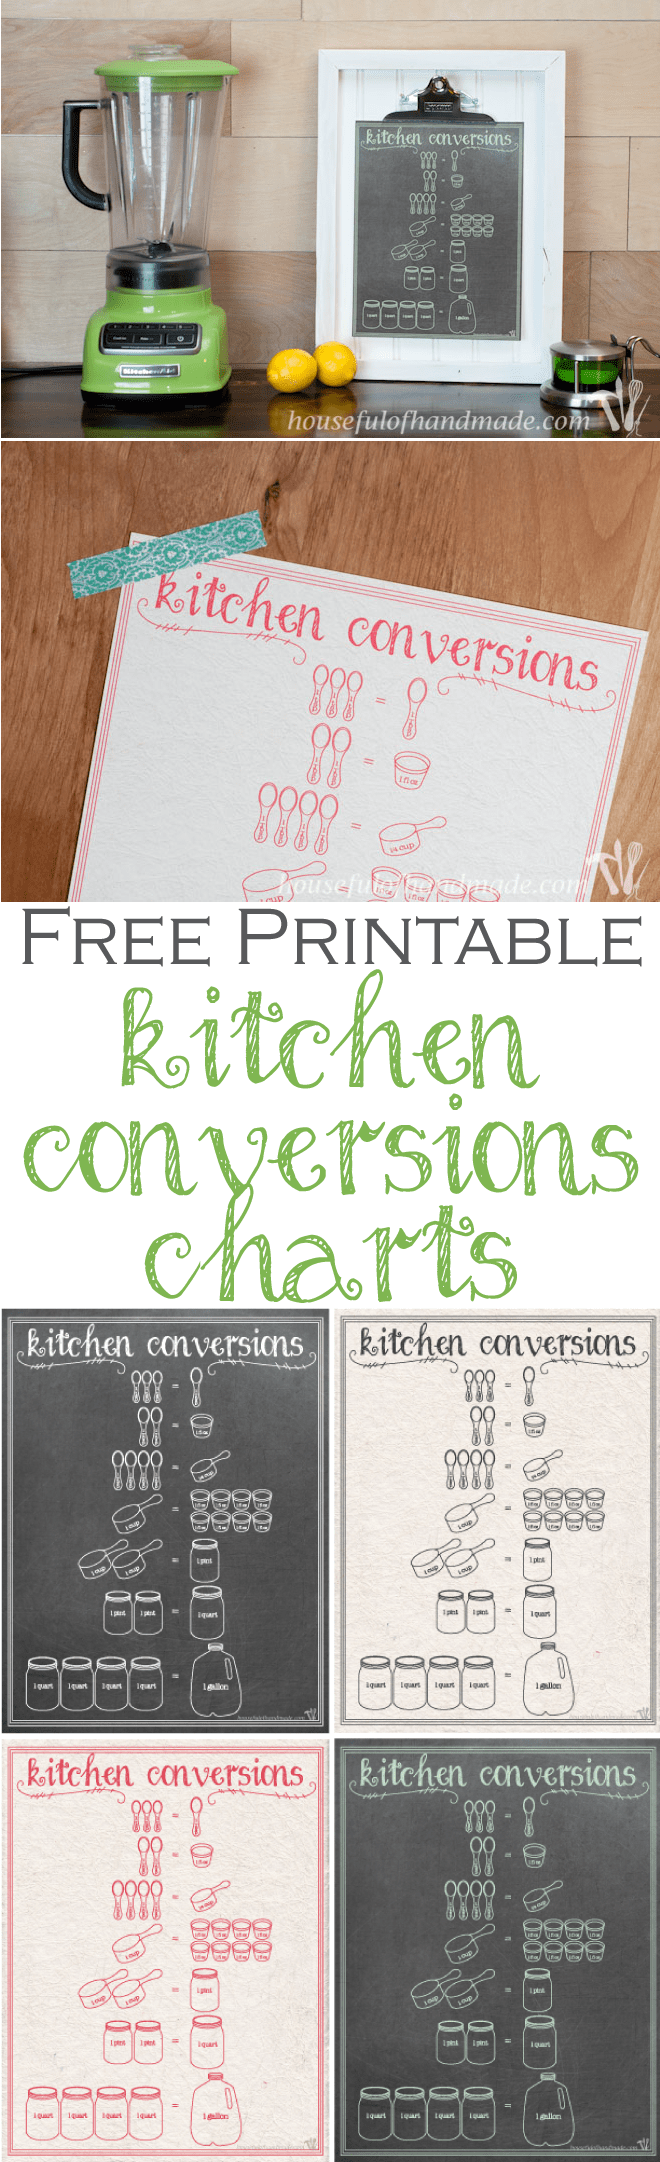 Free Printable Kitchen Conversion Chart - a Houseful of Handmade